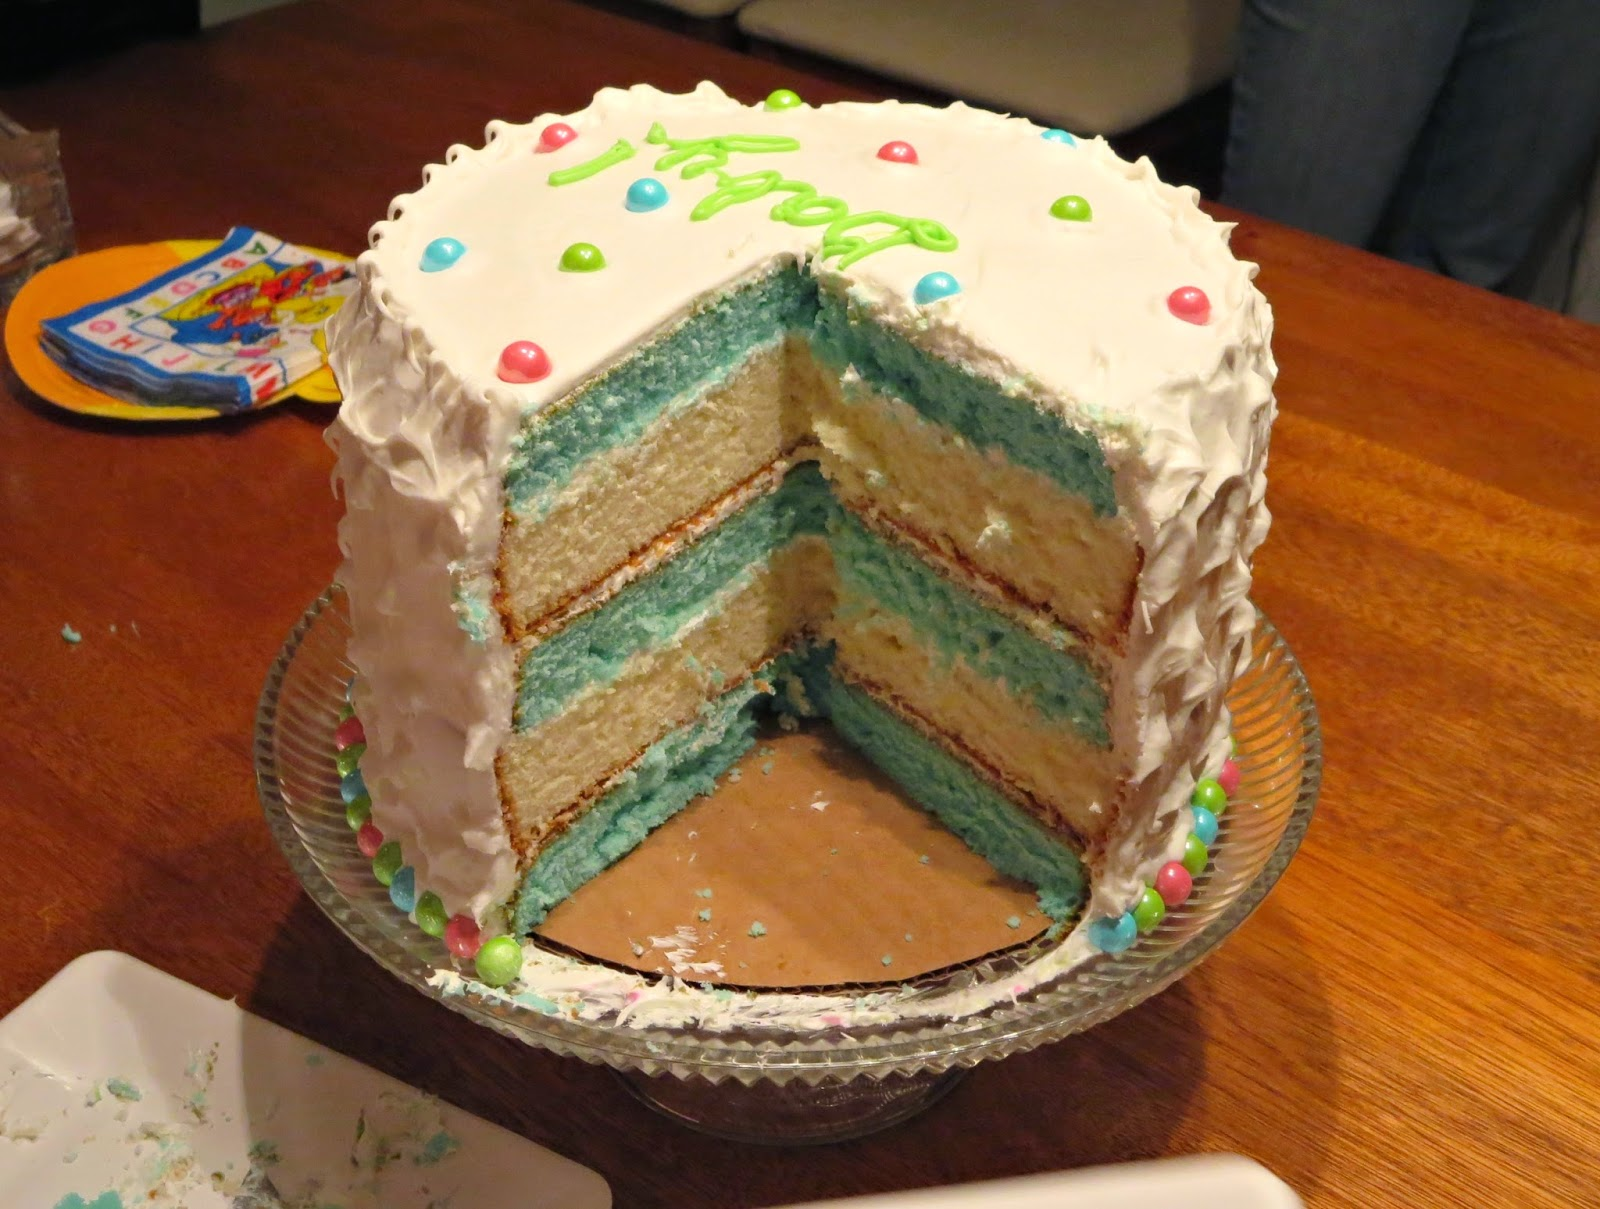 Baby Gender Reveal Cake - Inside of Cake - It's a BOY 2